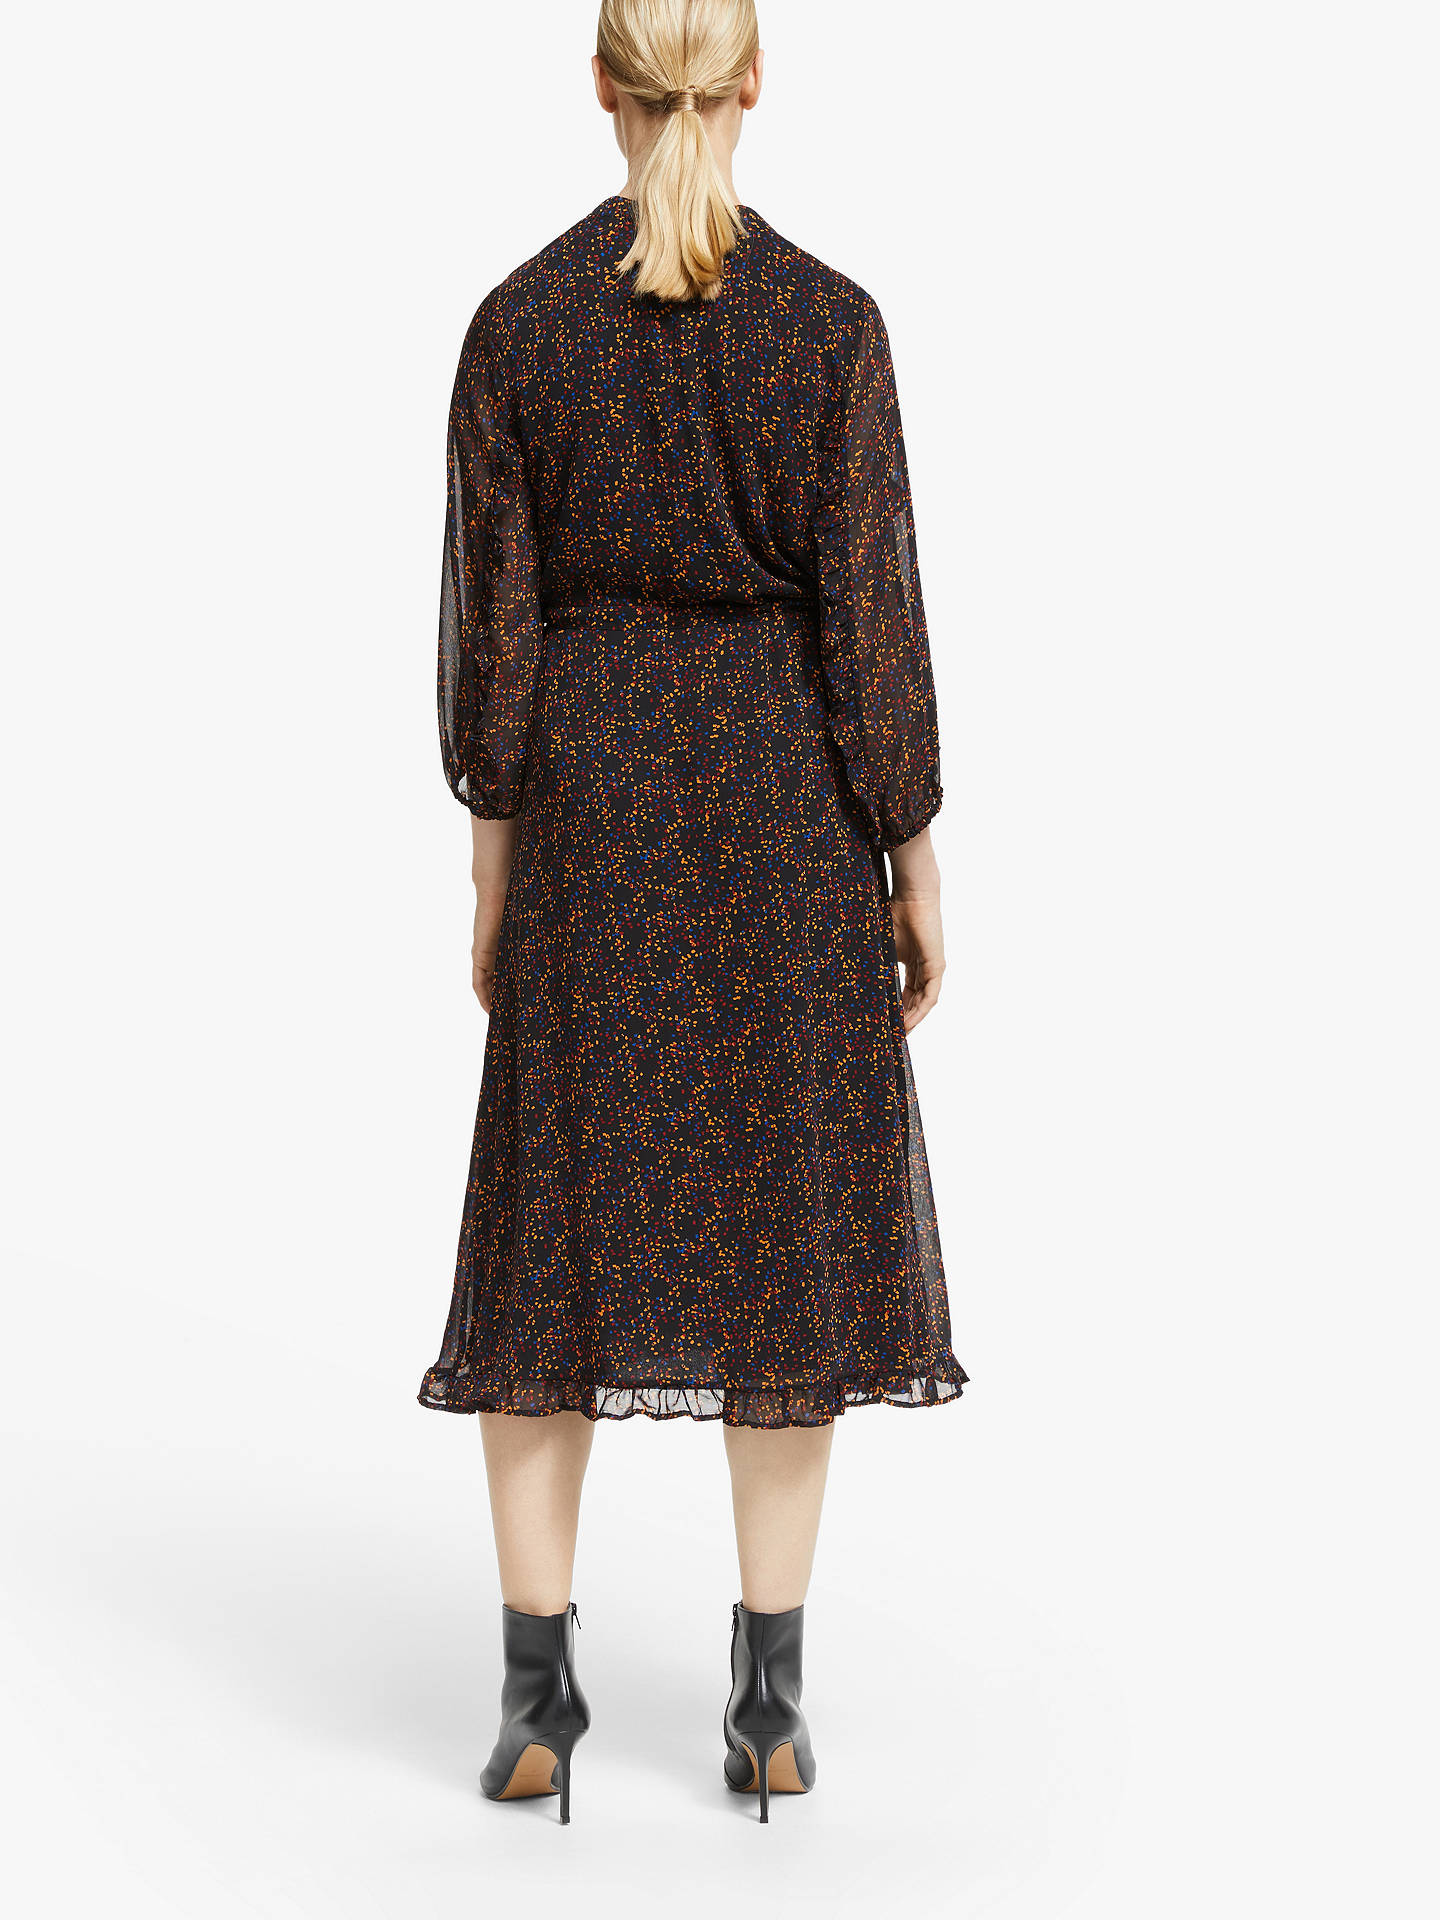 Buy Gestuz Almina Printed Dress, Black Multi, 8 Online at johnlewis.com